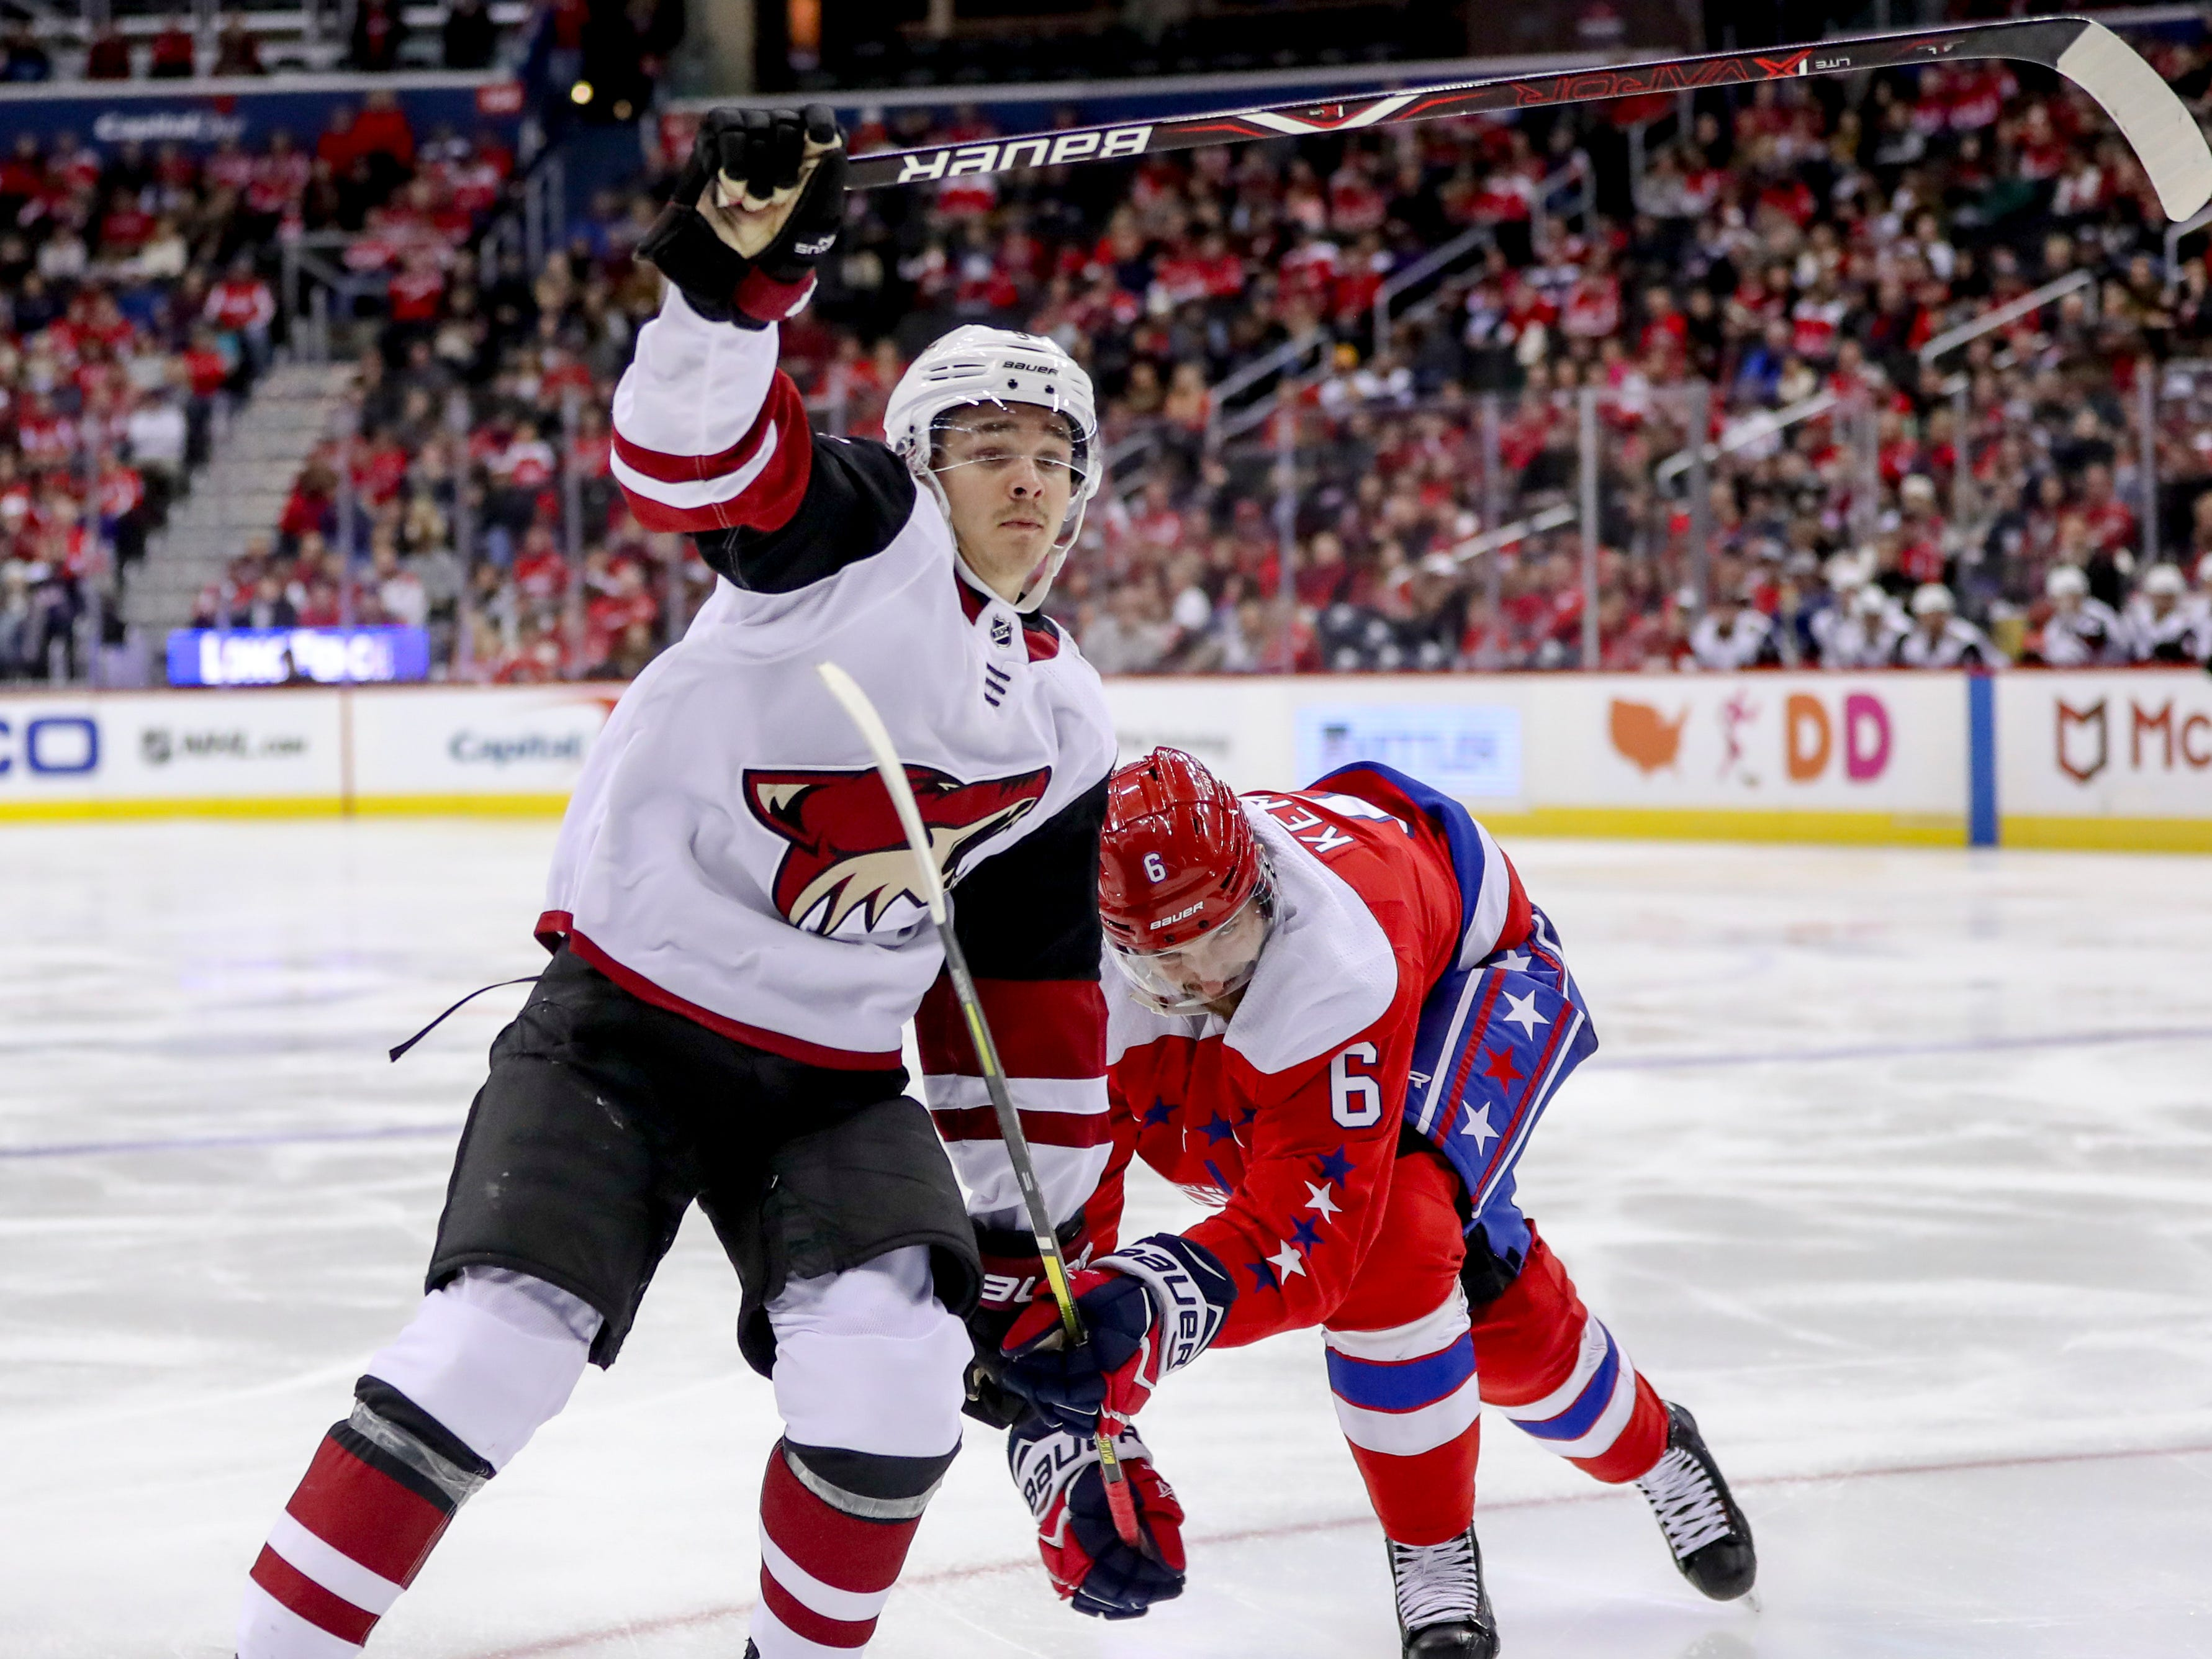 Arizona Coyotes center Clayton Keller and Washington Capitals defenseman Michal Kempny fight for a lose puck in the third period of an NHL hockey game, Sunday, Nov. 11, 2018 in Washington. The Coyotes won 4-1. (AP Photo/Andrew Harnik)